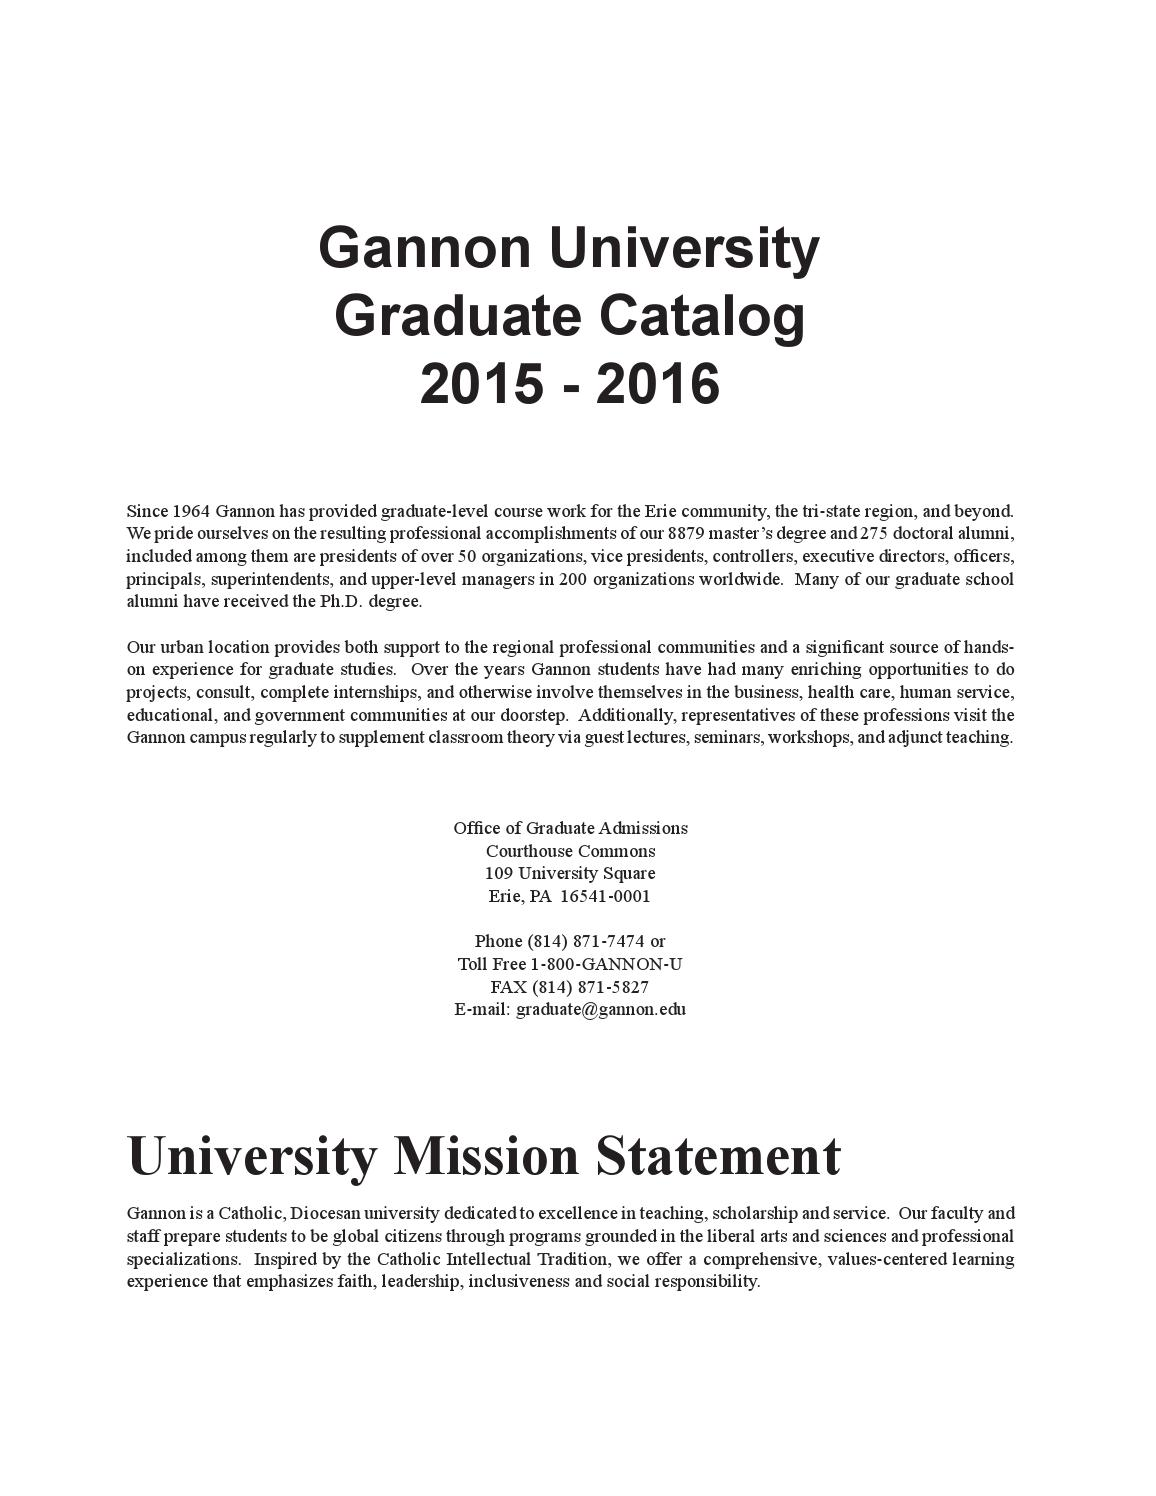 Gannon university graduate catalog 2015 2016 by gannon university gannon university graduate catalog 2015 2016 by gannon university issuu fandeluxe